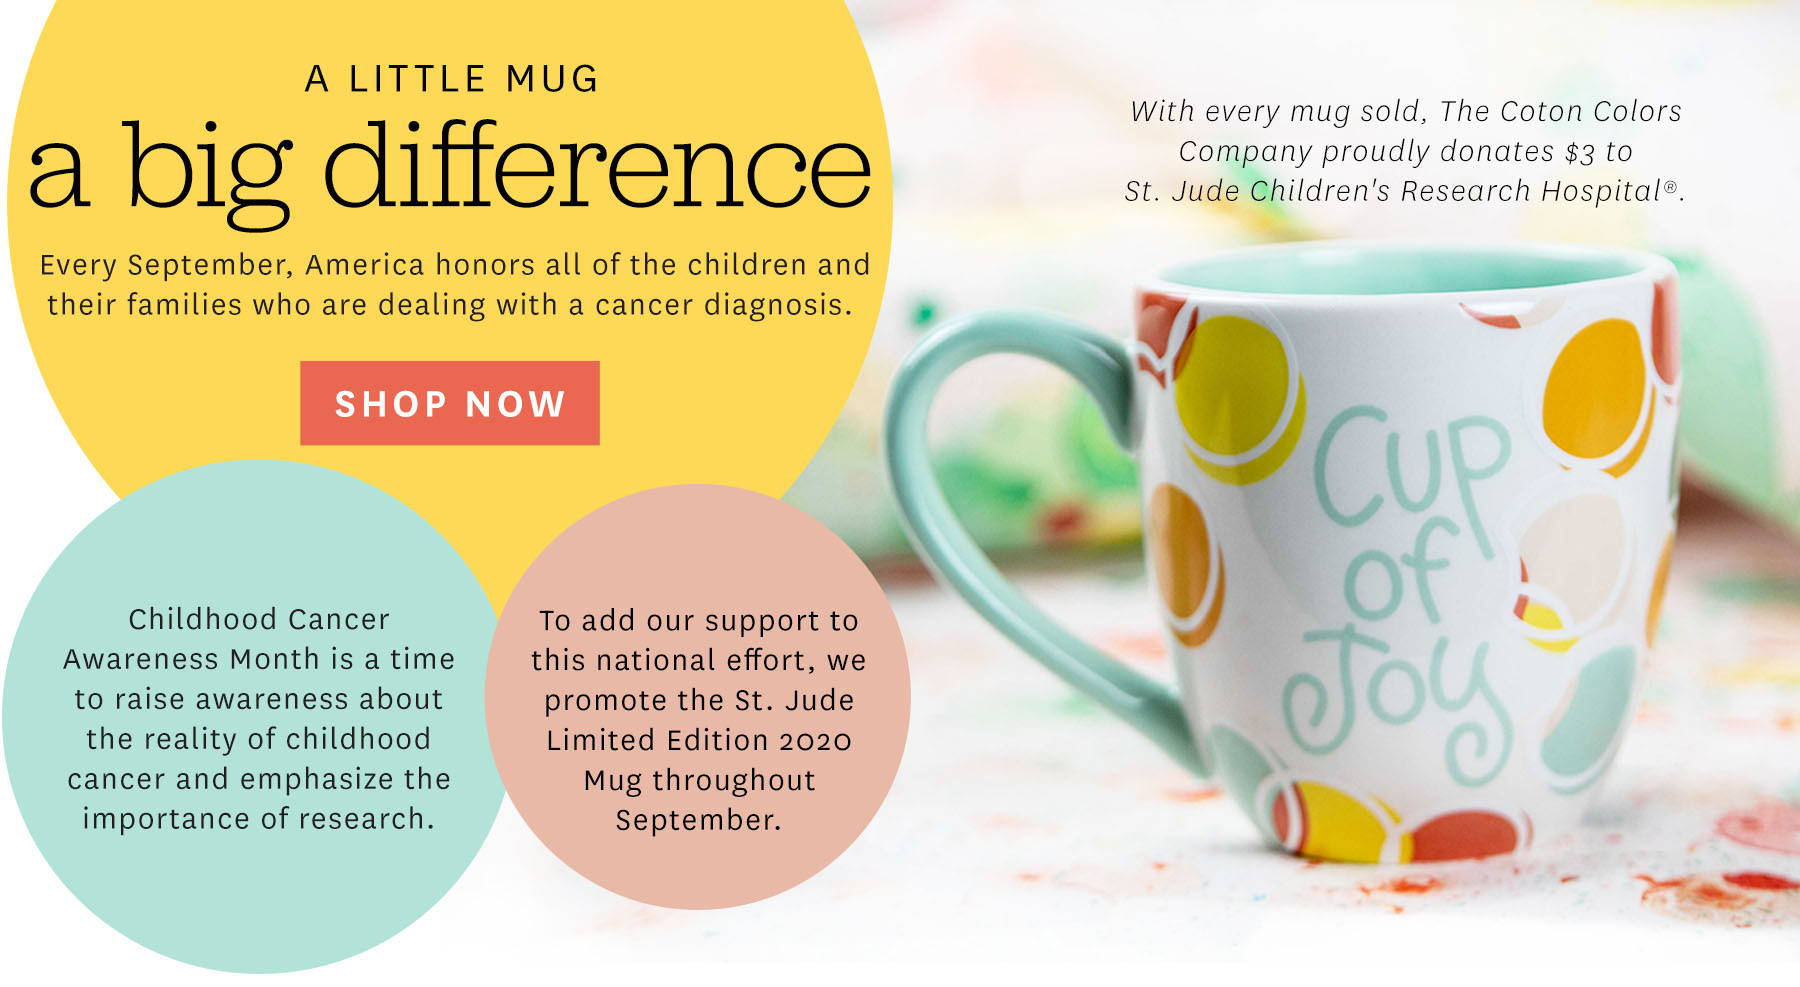 A little mug a big difference. Shop Now.